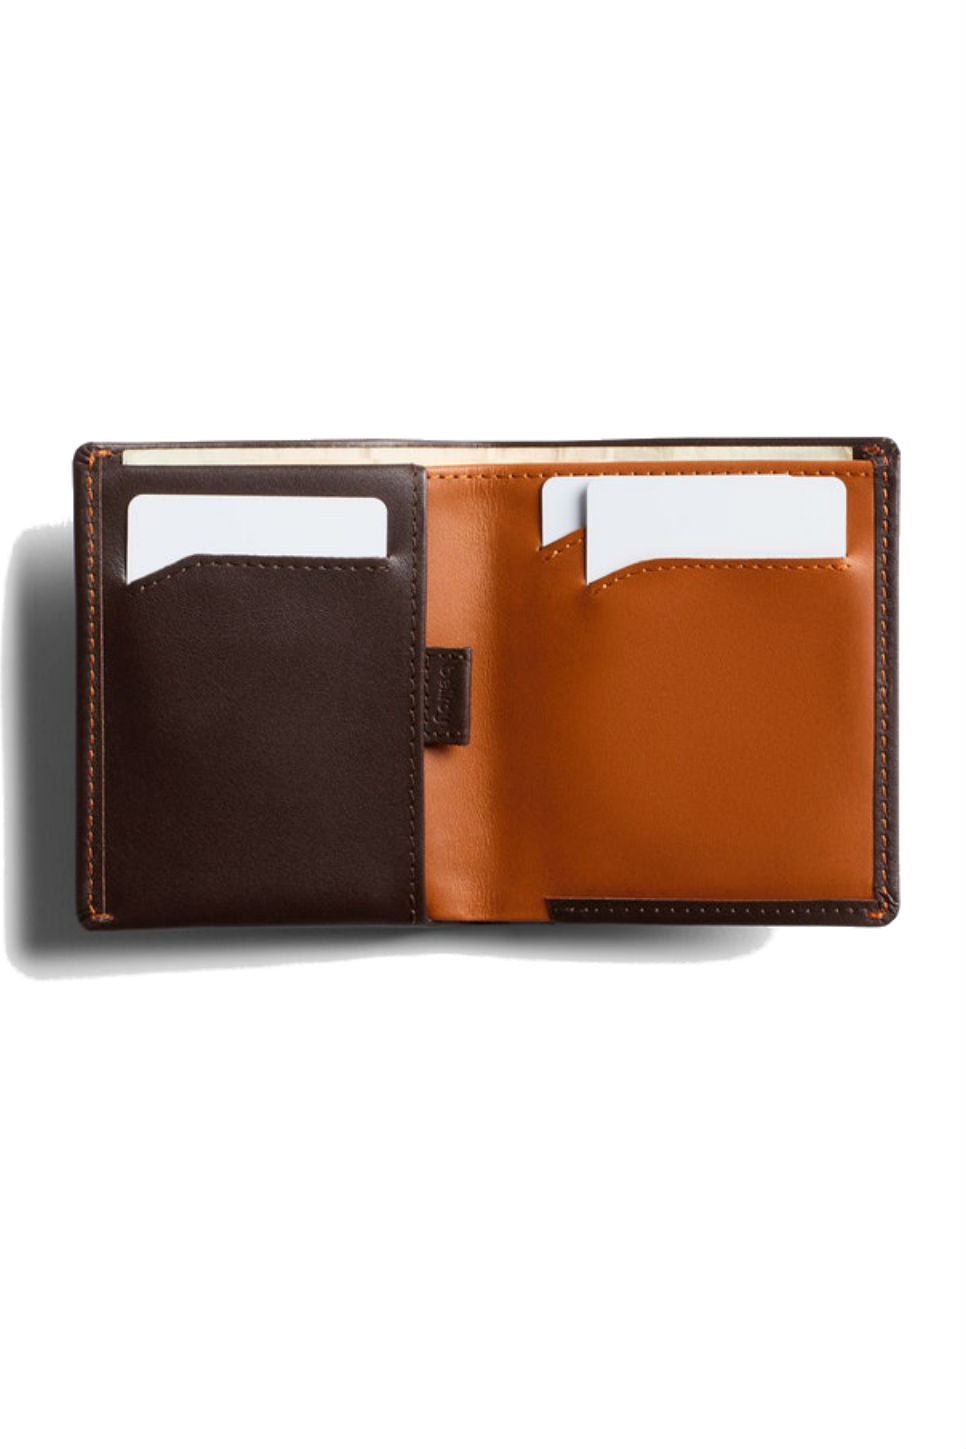 Bellroy - RFID Note Sleeve - Java - Inside